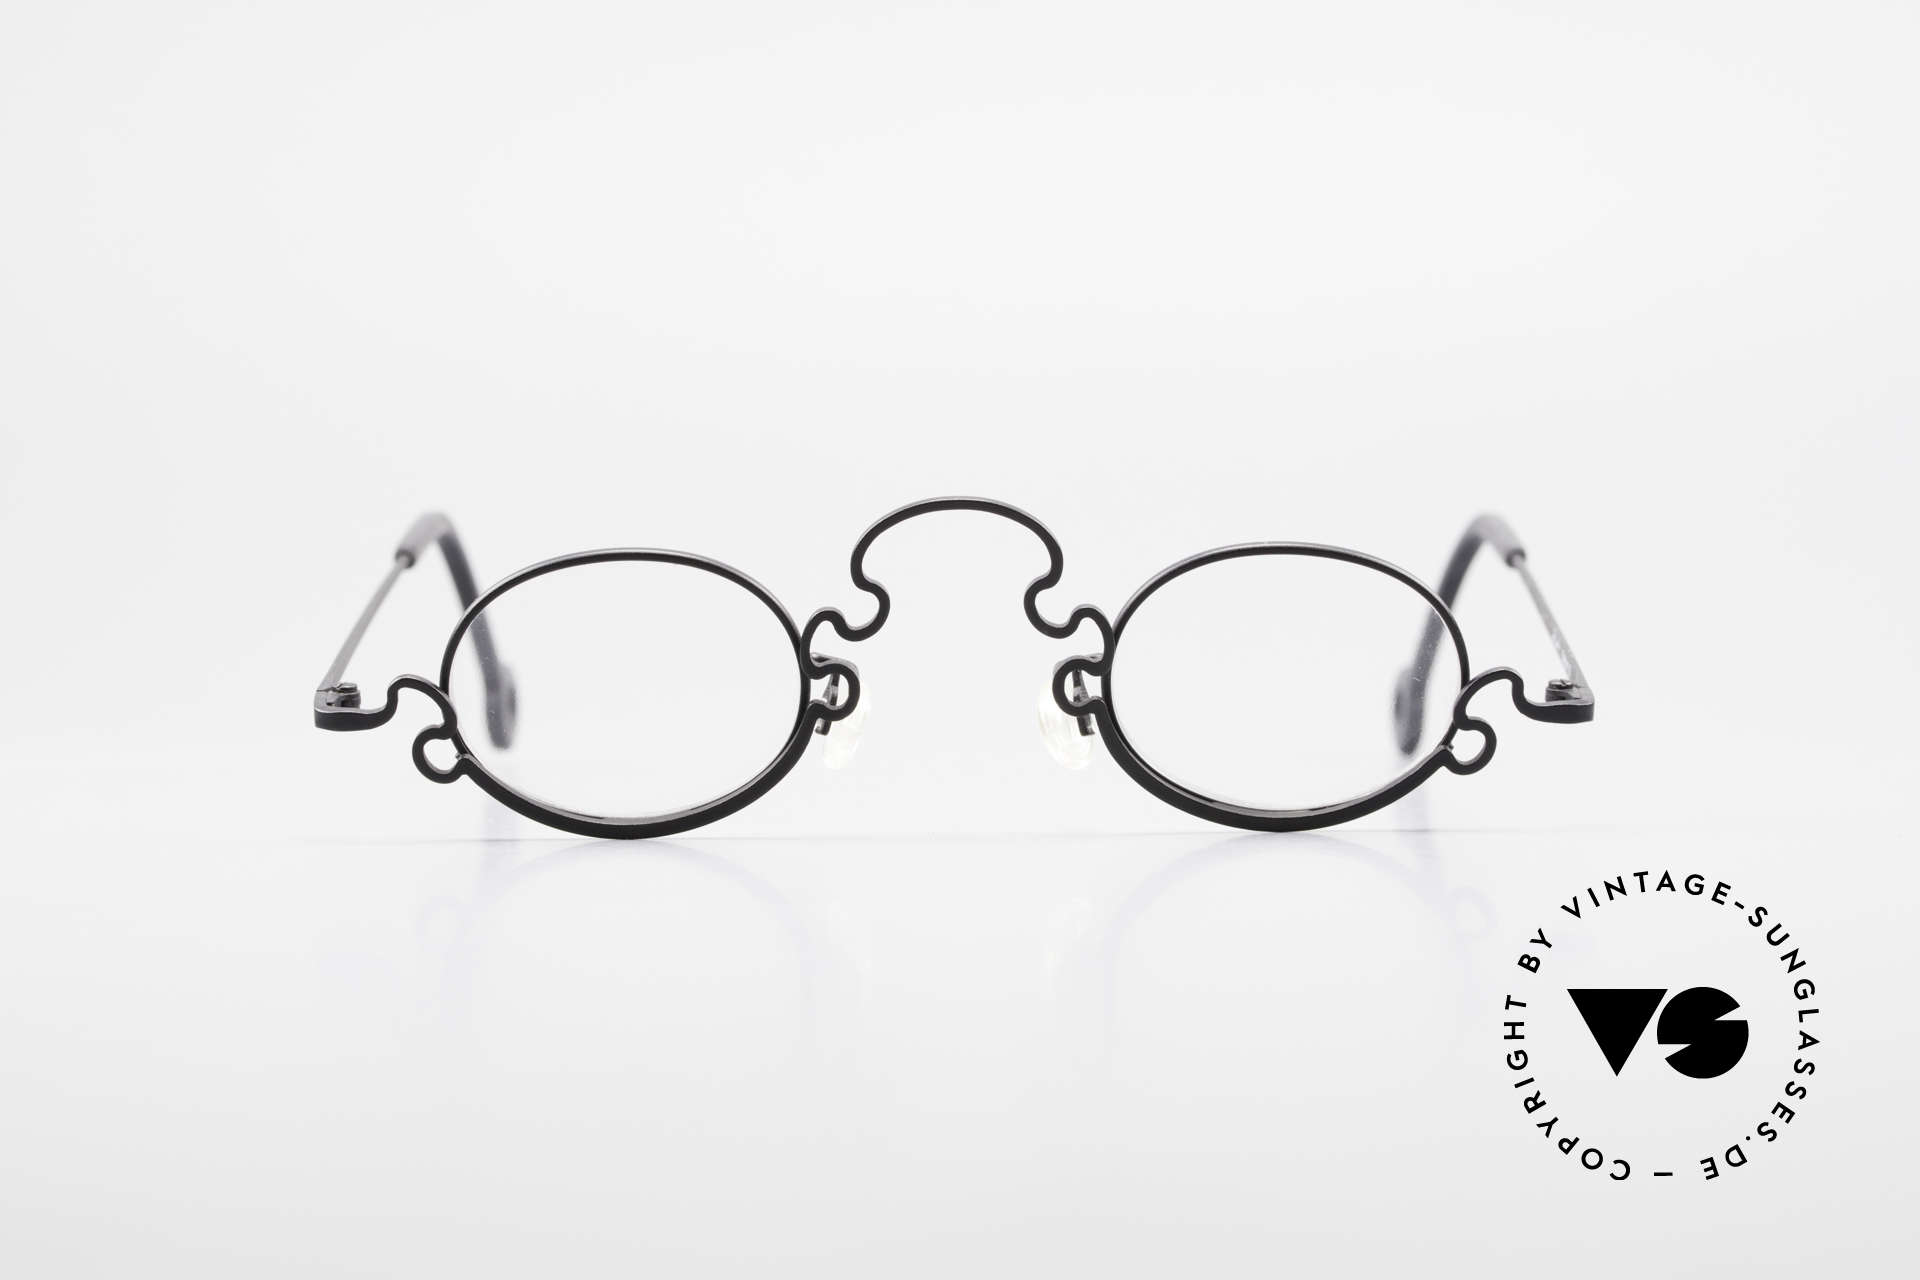 Theo Belgium Puzzle Spaghetti Eyeglasses Ladies, founded in 1989 as 'anti mainstream' eyewear / glasses, Made for Women